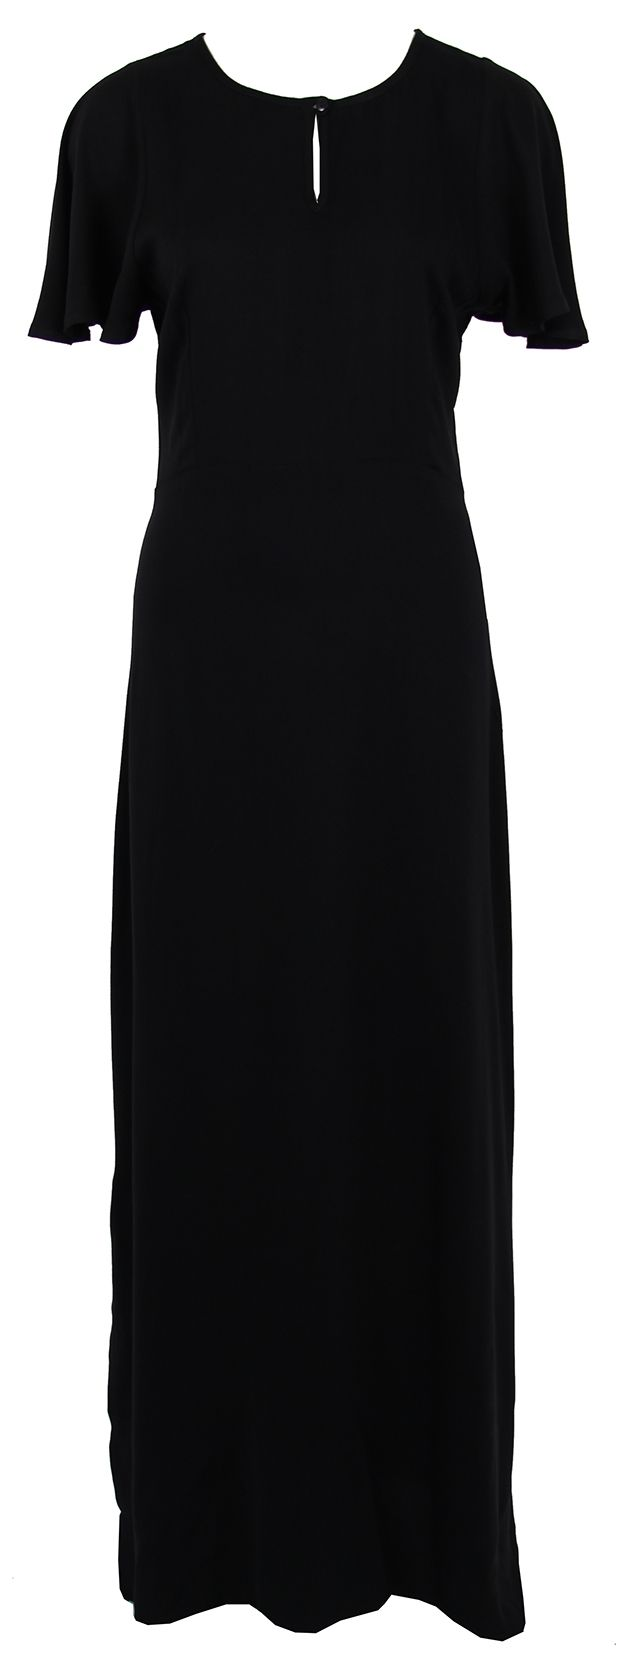 Yvonne Dress - KILT Super New - NZ made and designed women's fashion and clothing -